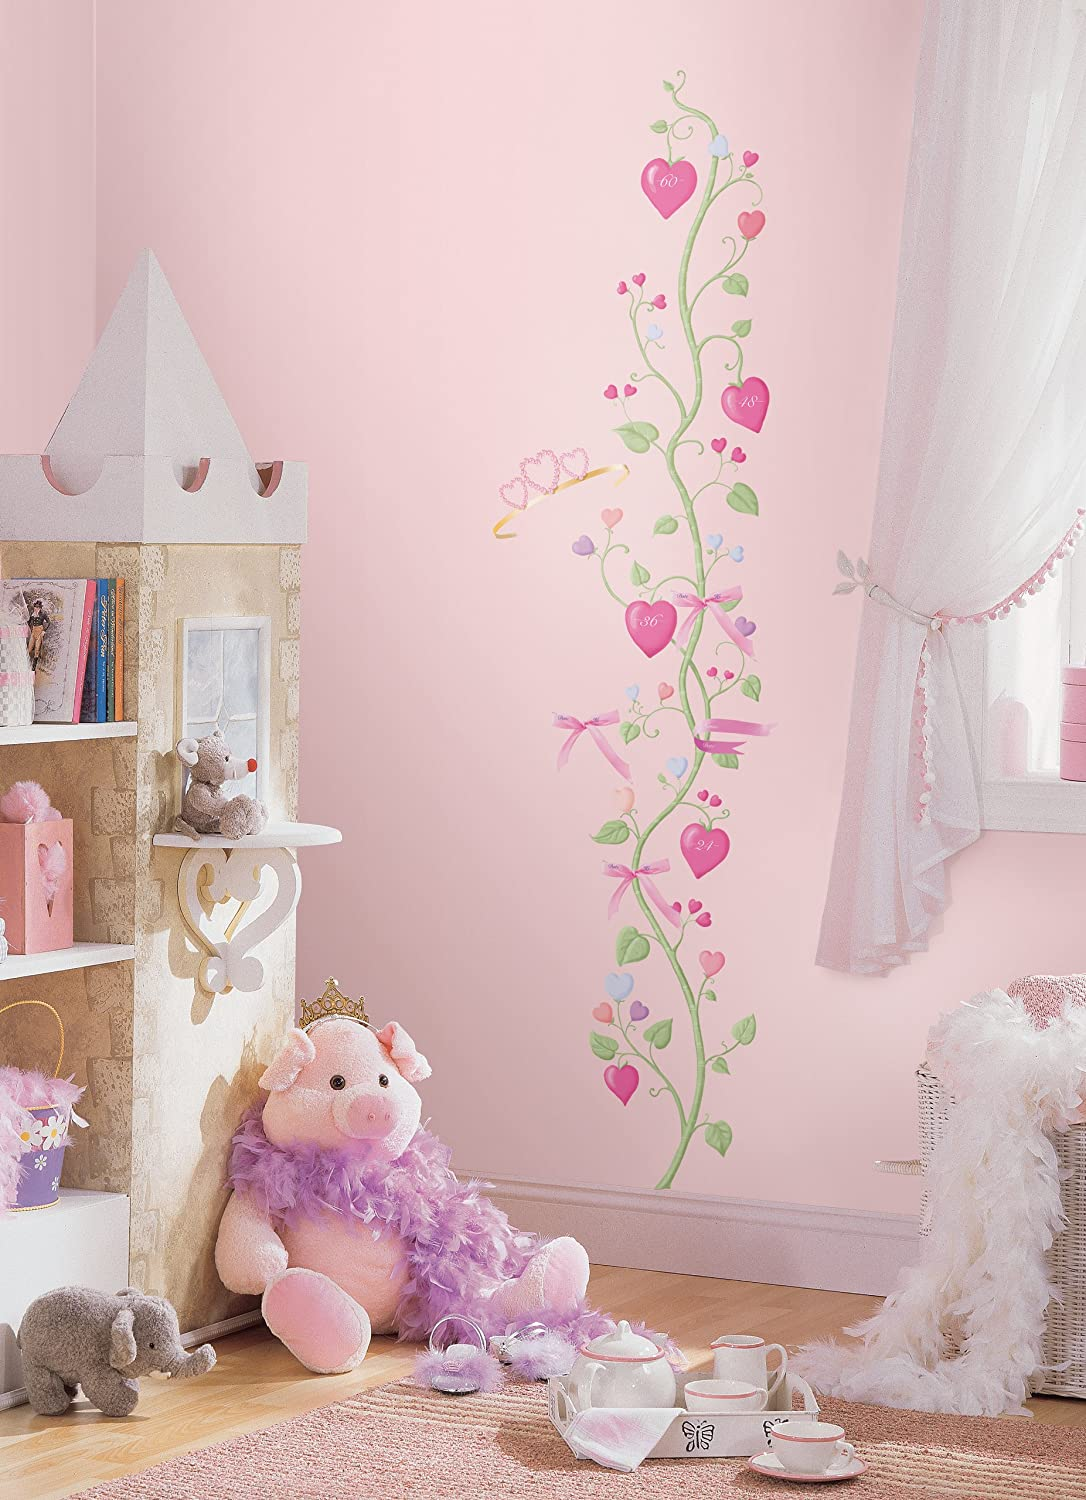 roommates repositionable childrens wall sticker fairy princess roommates repositionable childrens wall sticker fairy princess height chart cm amazon co uk kitchen home